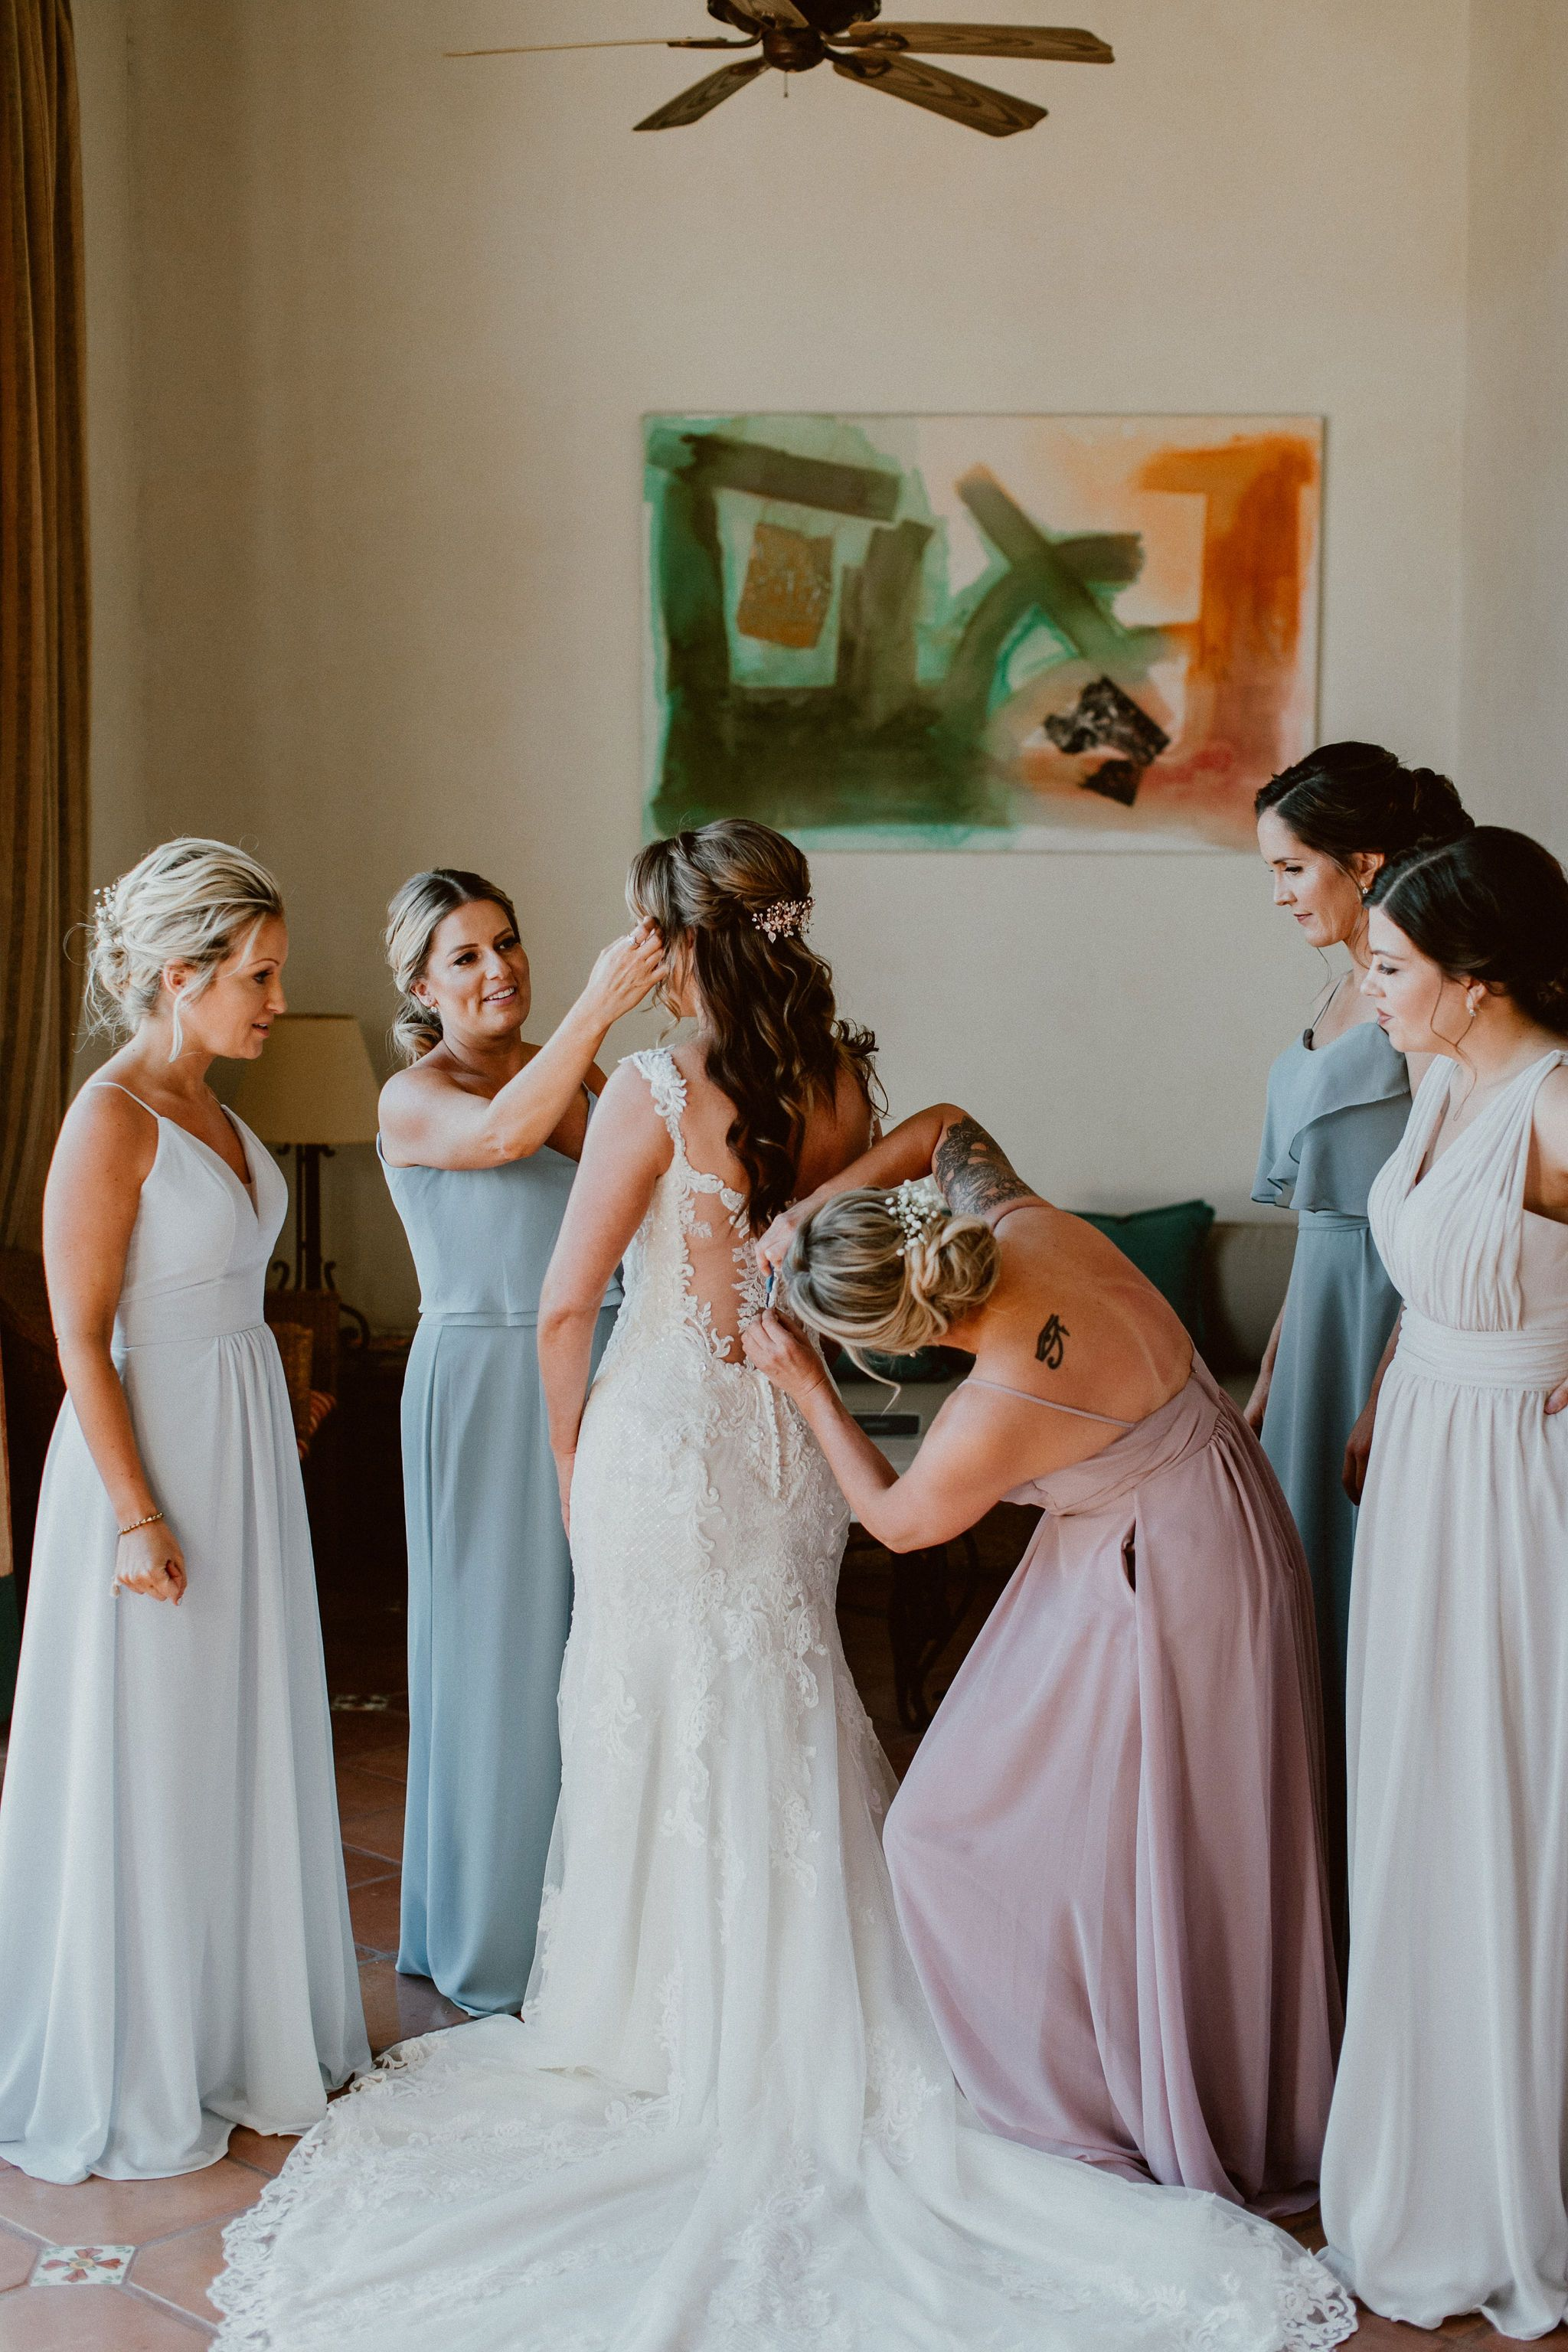 Bride getting ready with her Bridesmaids, getting her dress on. This was at her Bridal Suite in Cabo Del Sol, in Los Cabos, Mexico. This was January, 2019 and she hosted her wedding day with 50 of her closest Family and Friends, who most of them came from Oregon and Minnesota.